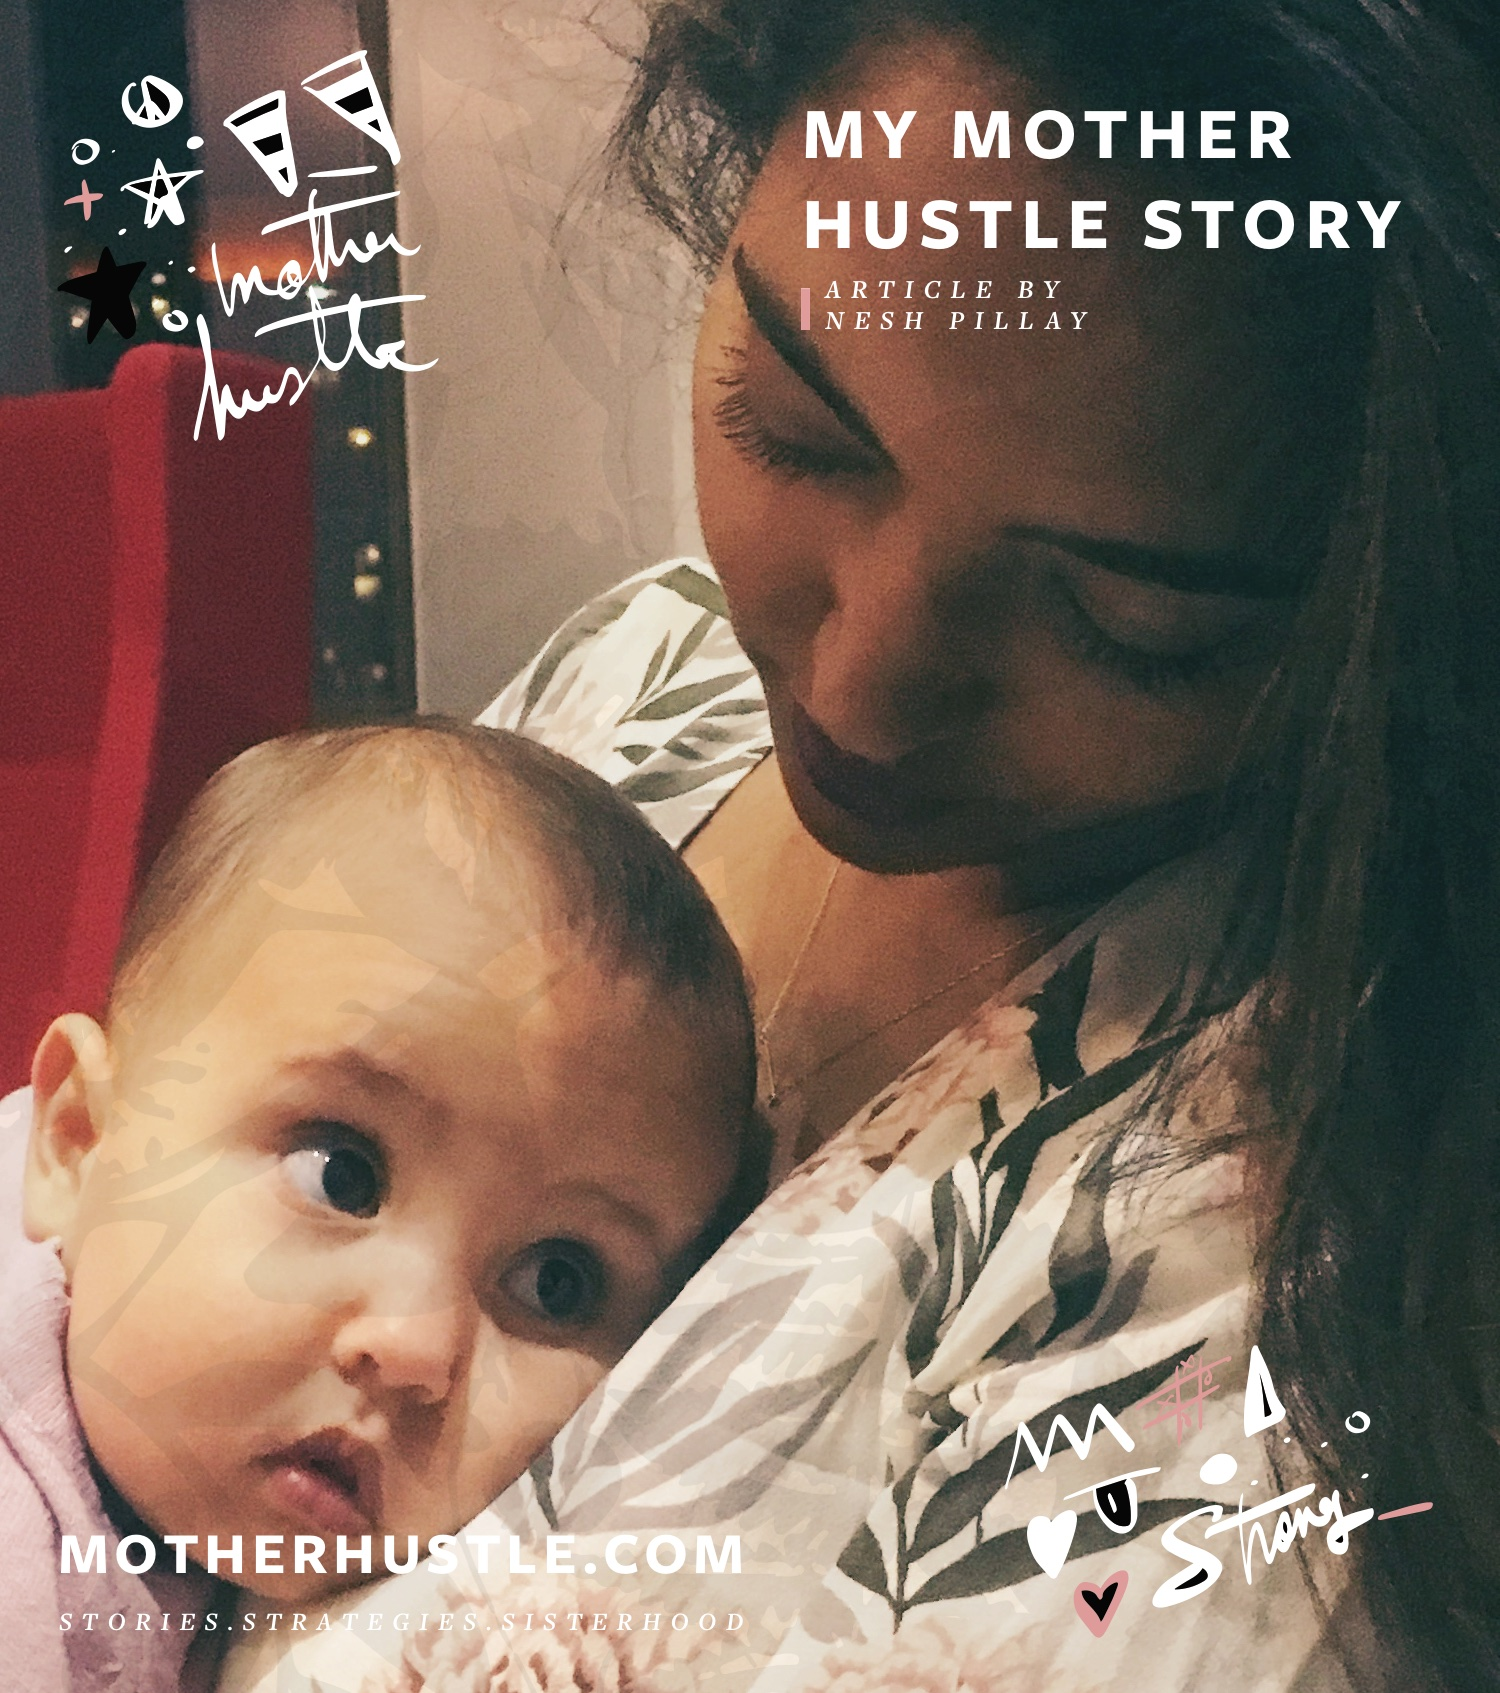 My MotherHustle Story - MOTHERHUSTLE, NOVEMBER 2017